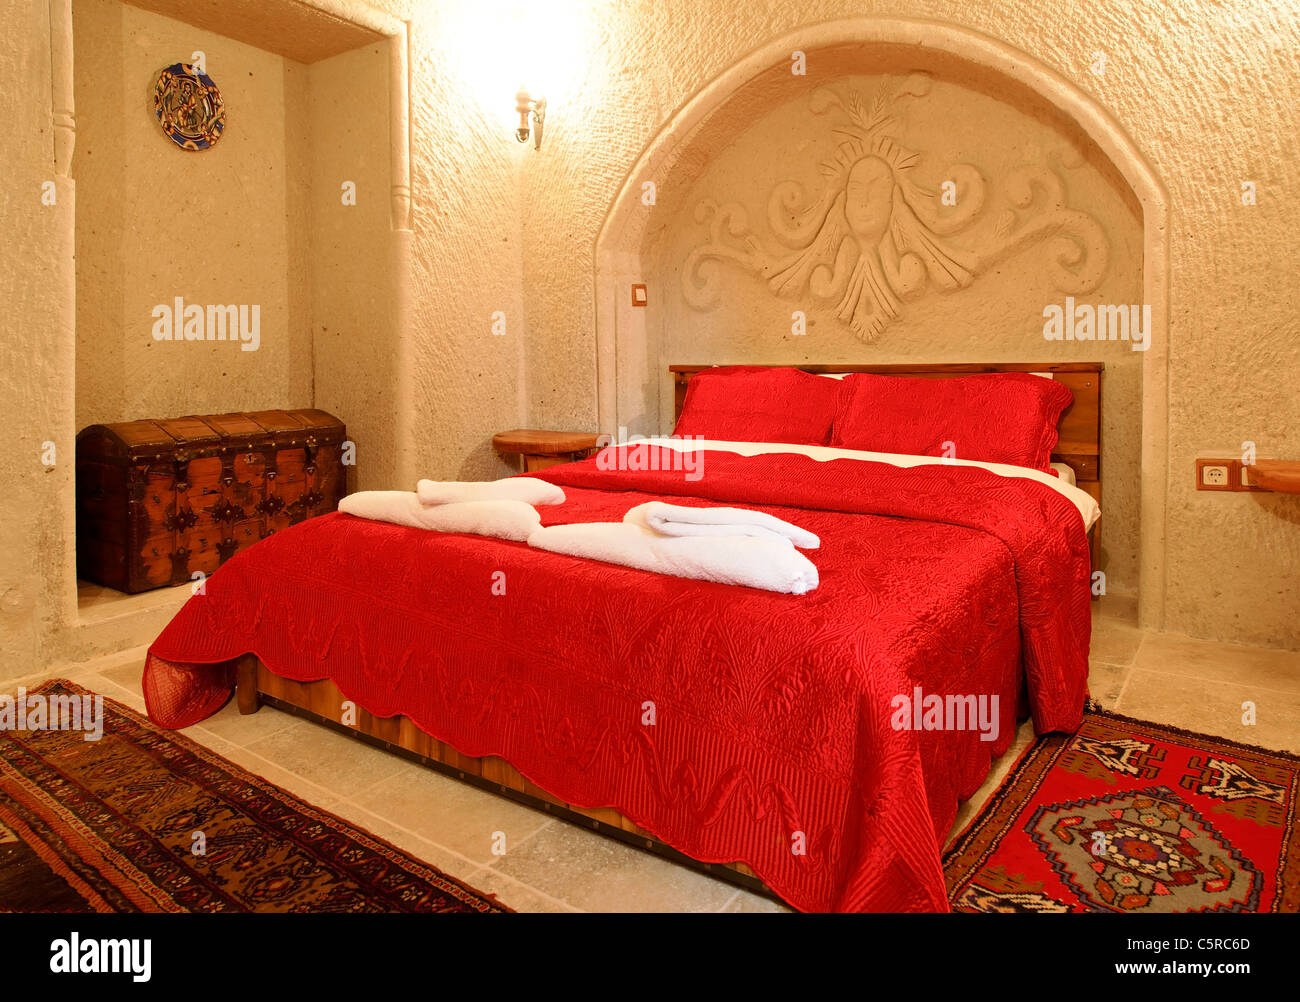 Interior Architectural Detail Of Bedroom With Alcove And Archway Detailing, Red  Bed Cover In Embroidered Bright Red Bedspread